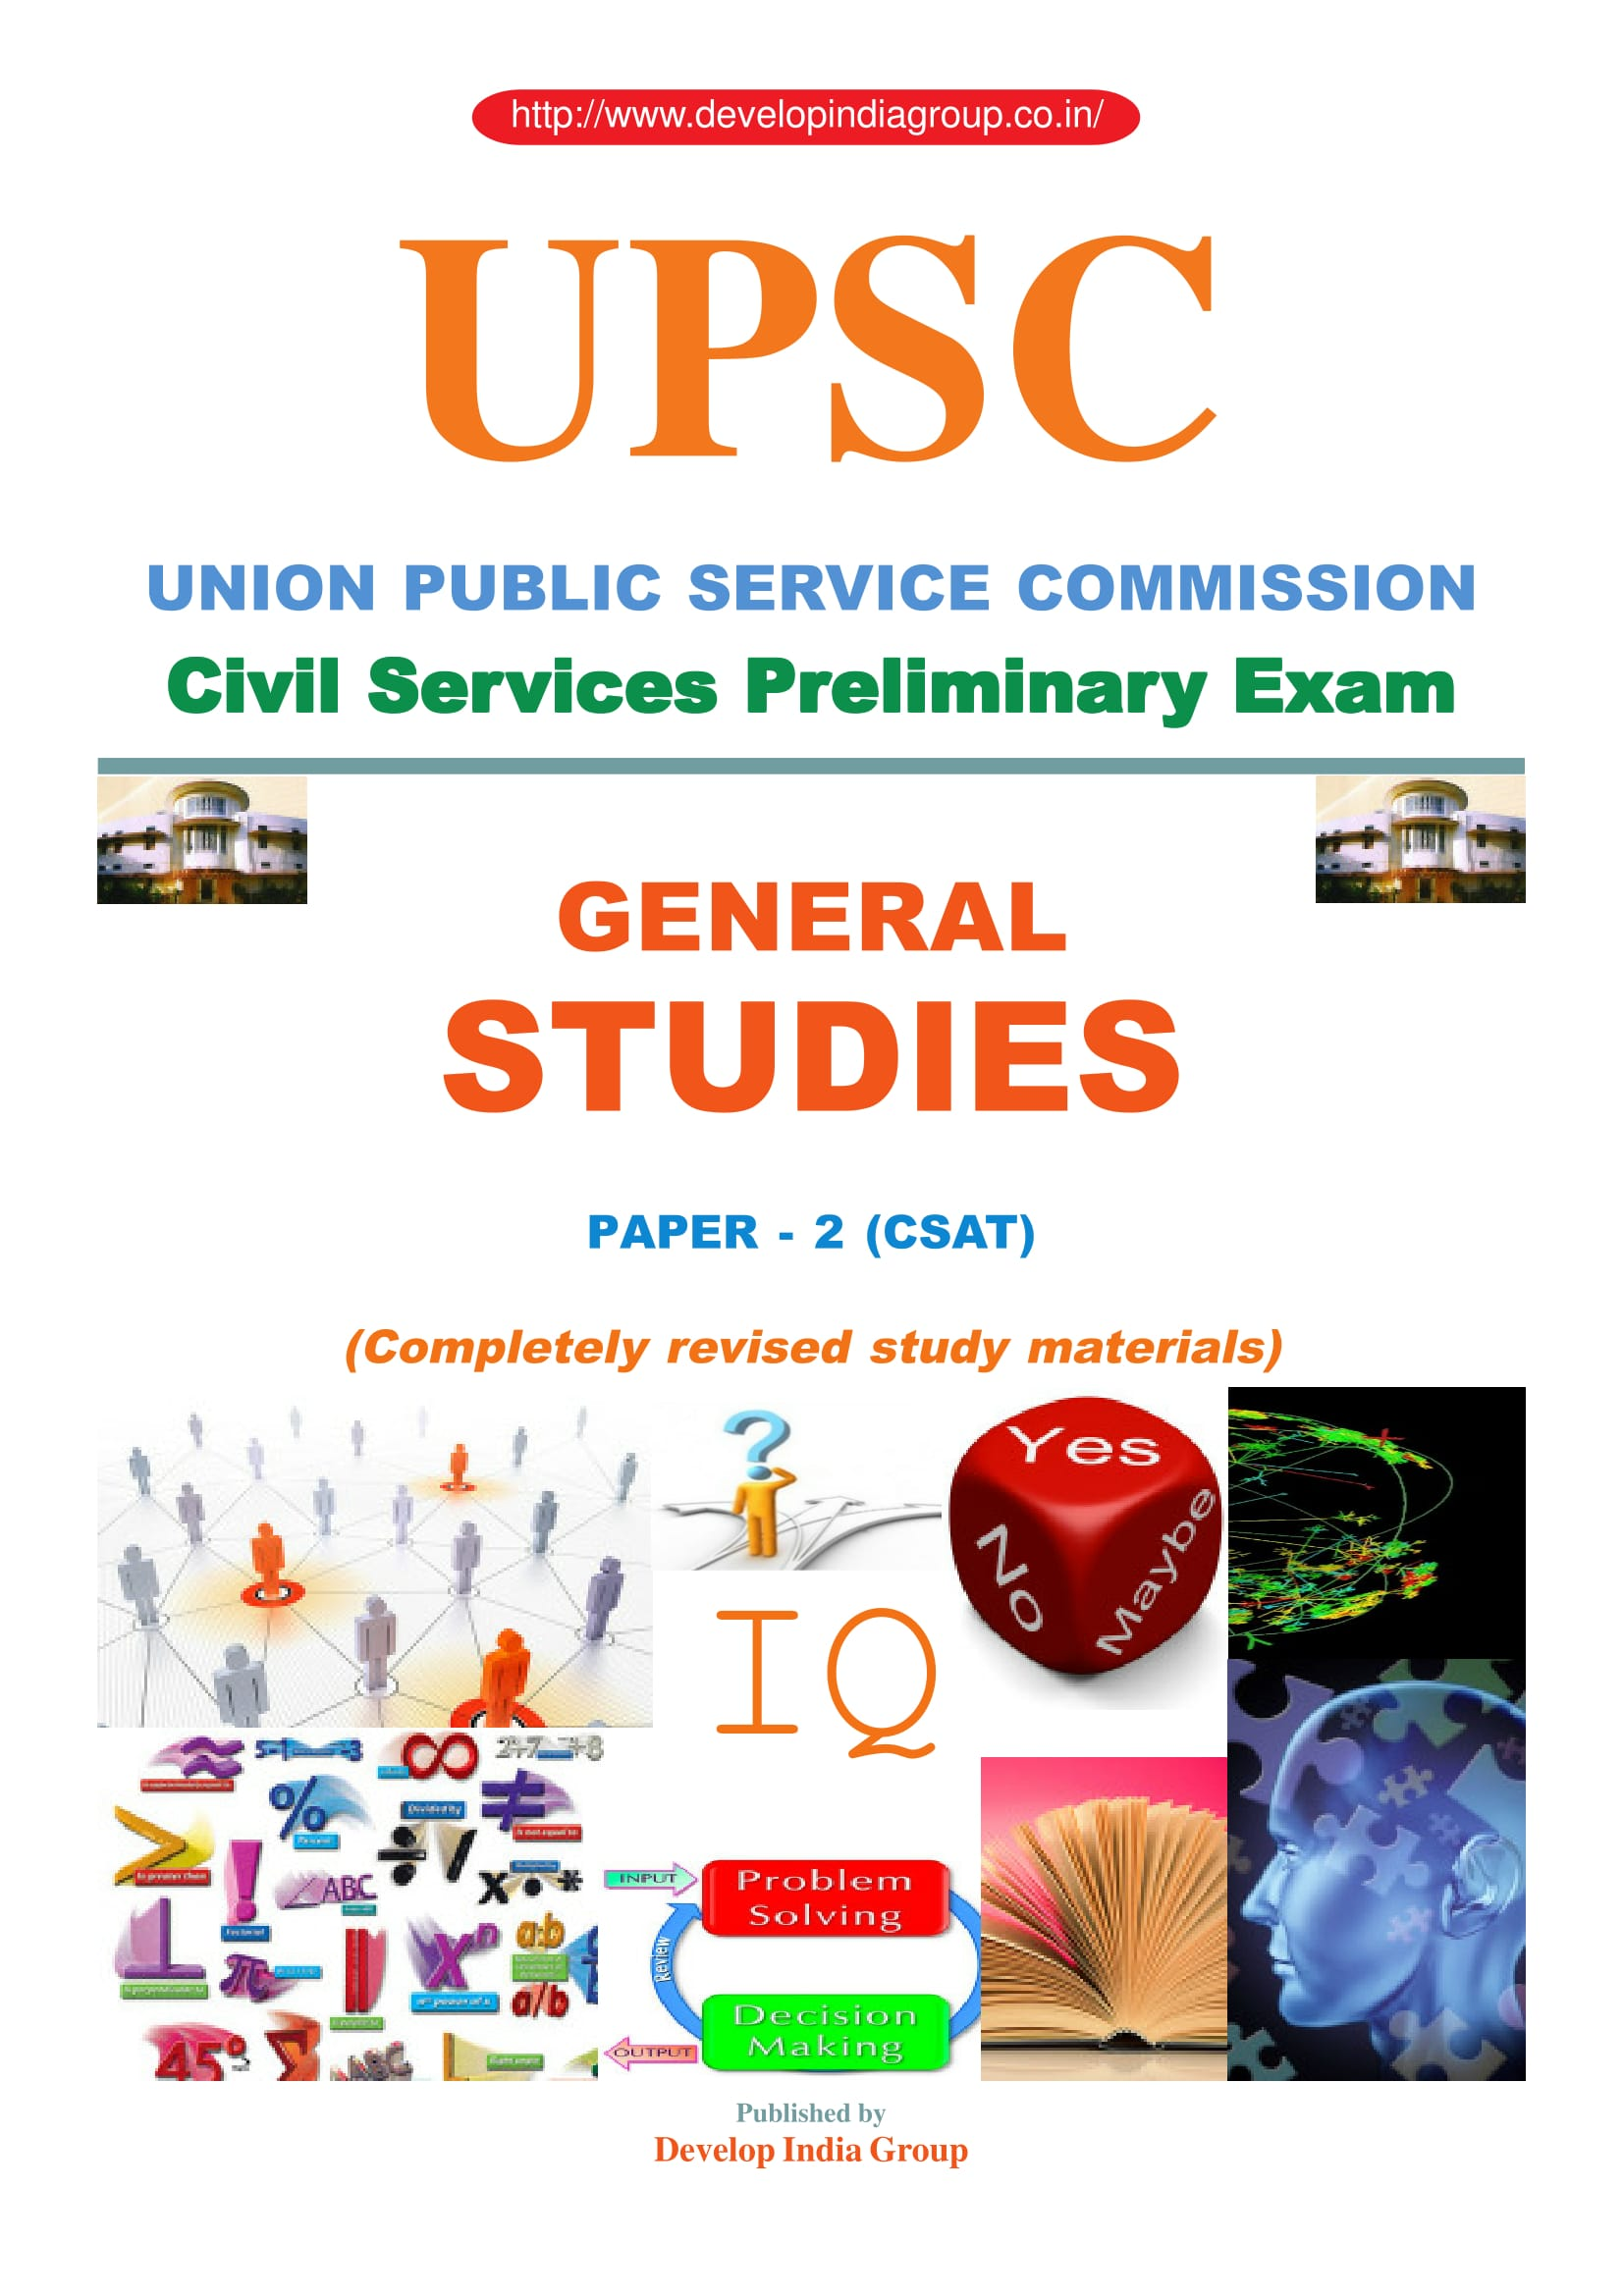 Civil Services Prelims Exam Paper II (CSAT) study notes (English)